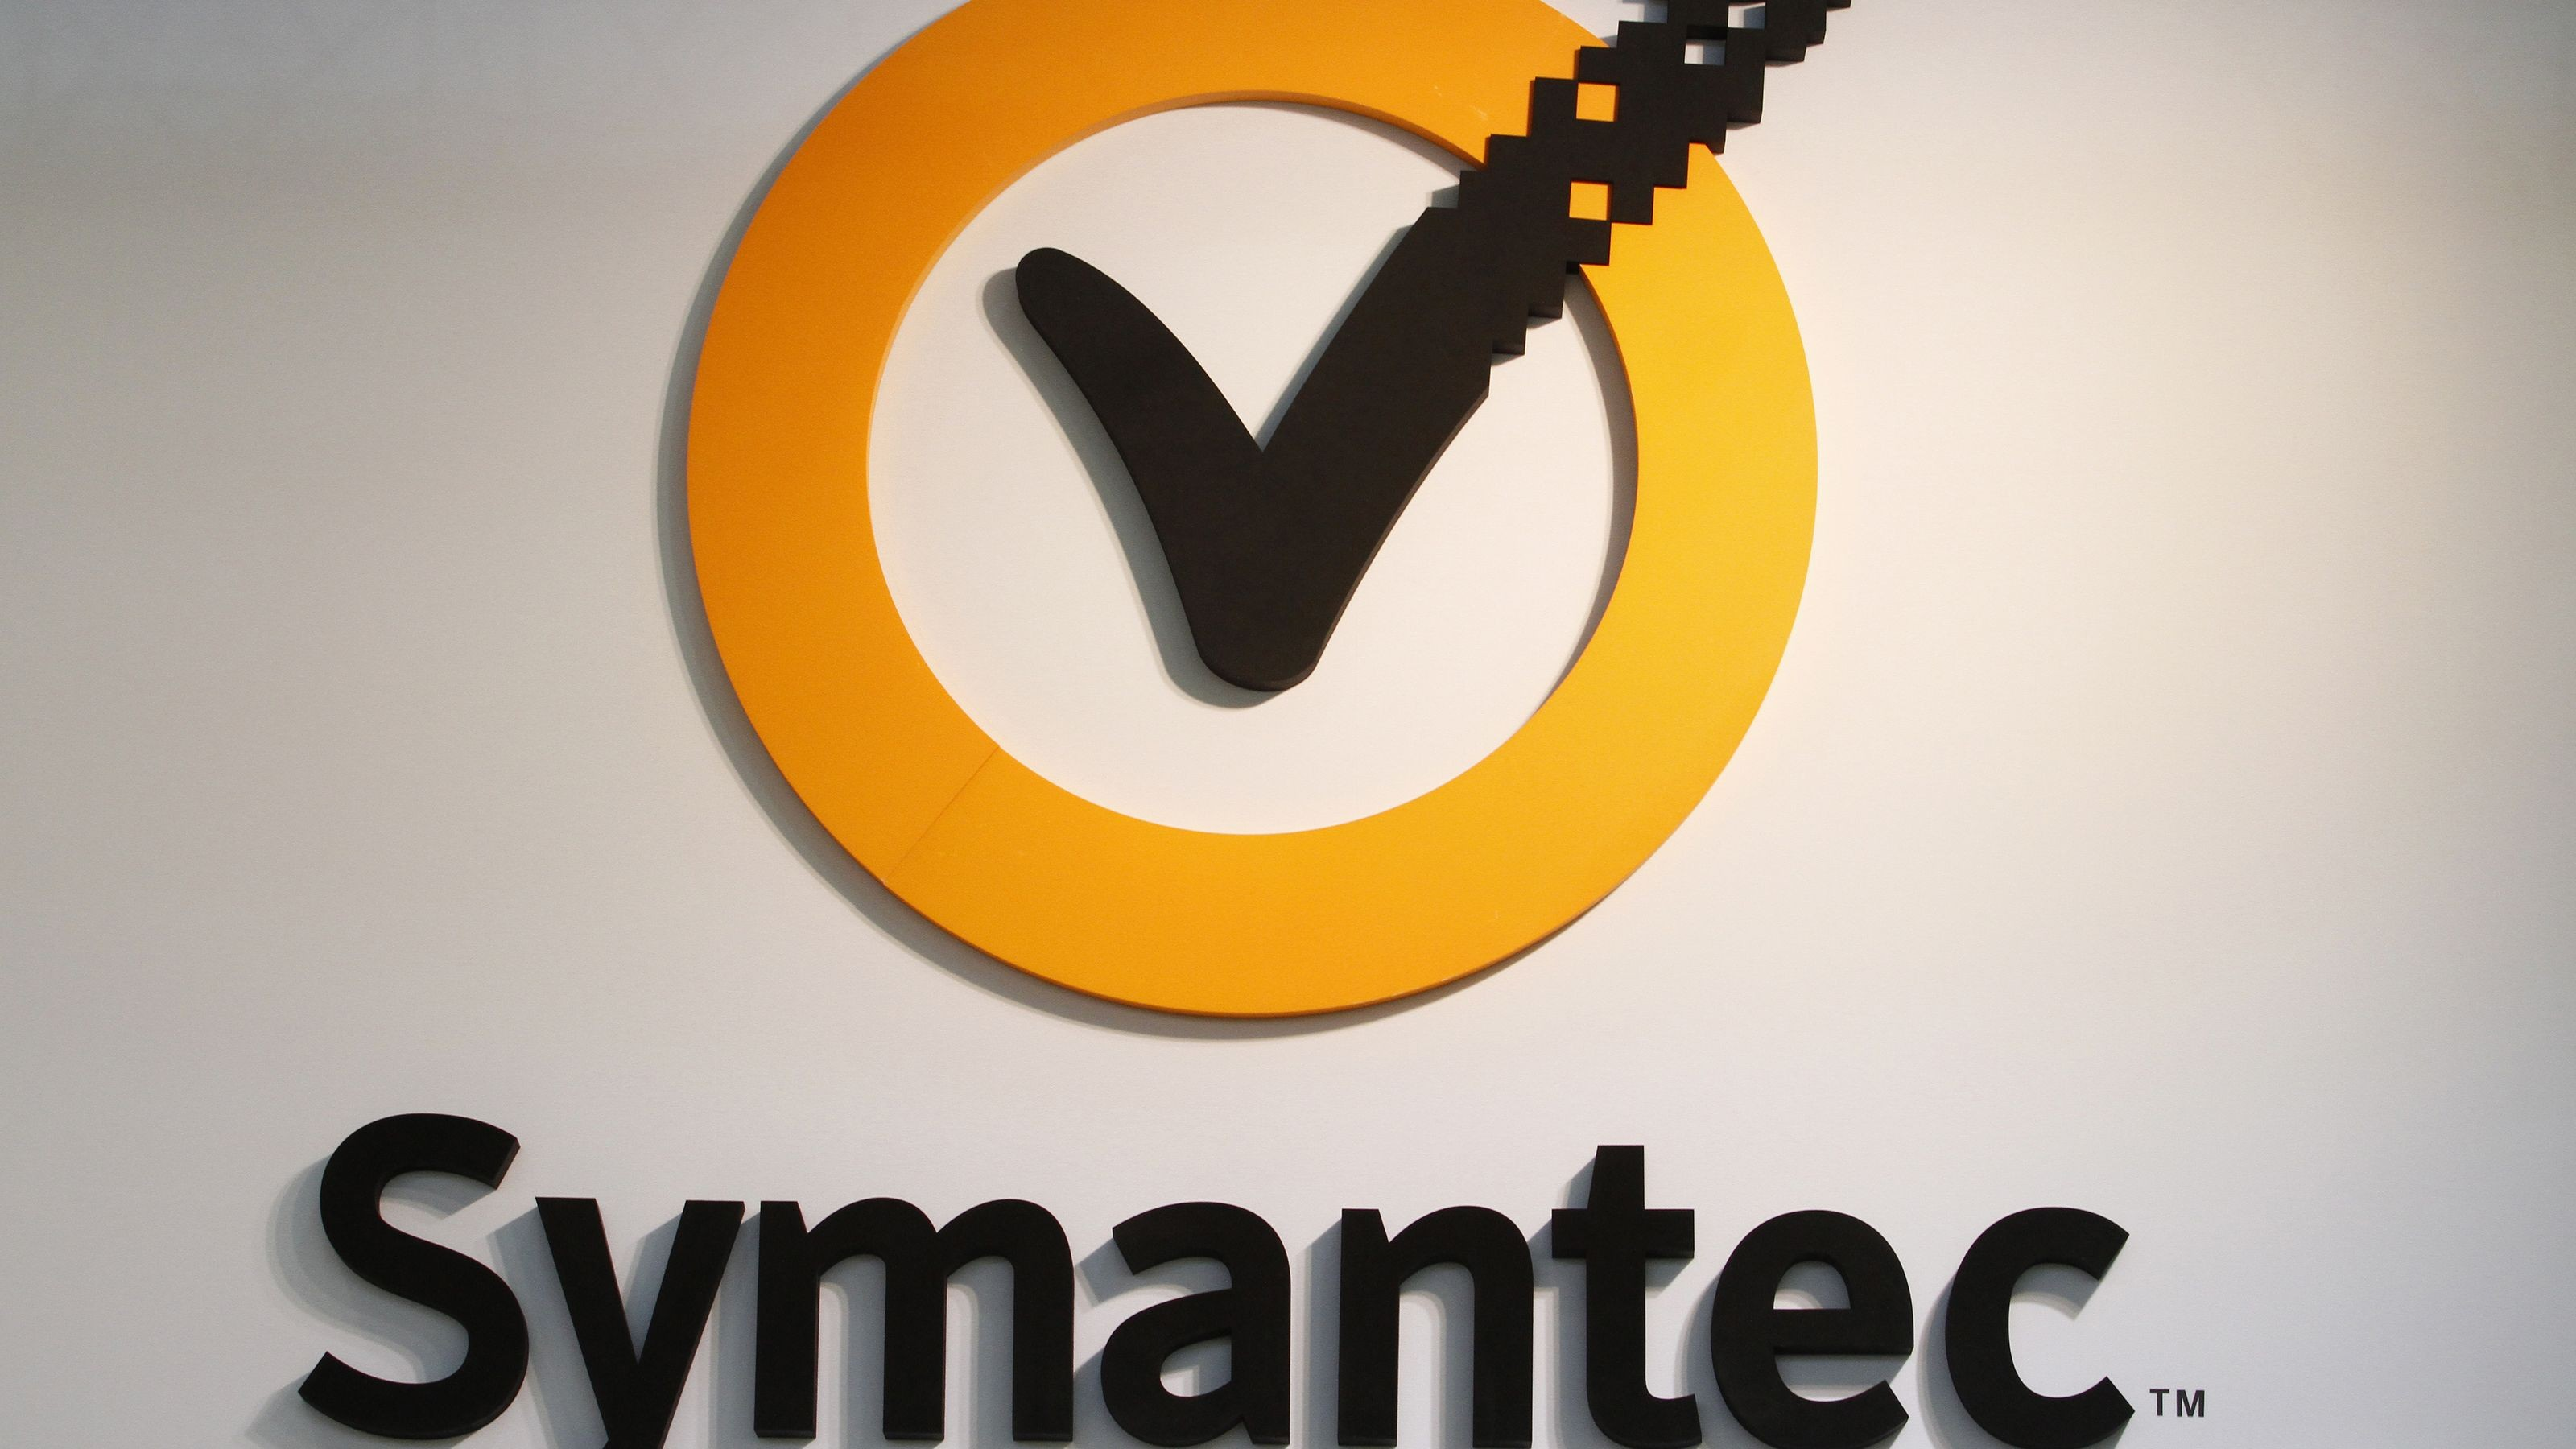 Symantec купит стартап по IT-безопасности LifeLock за $2,3 млрд